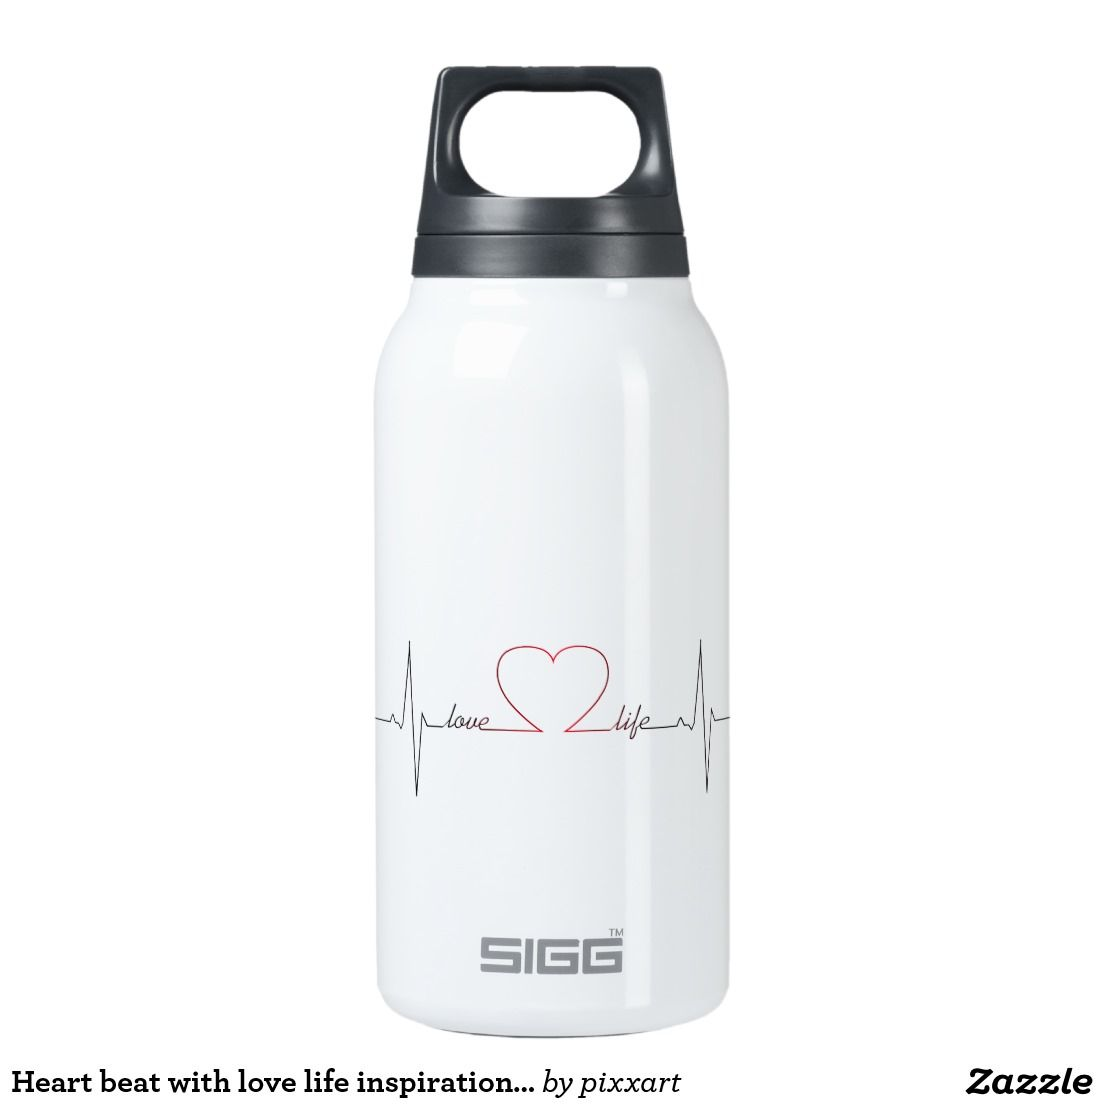 Heart beat with love life inspirational quote insulated water bottle